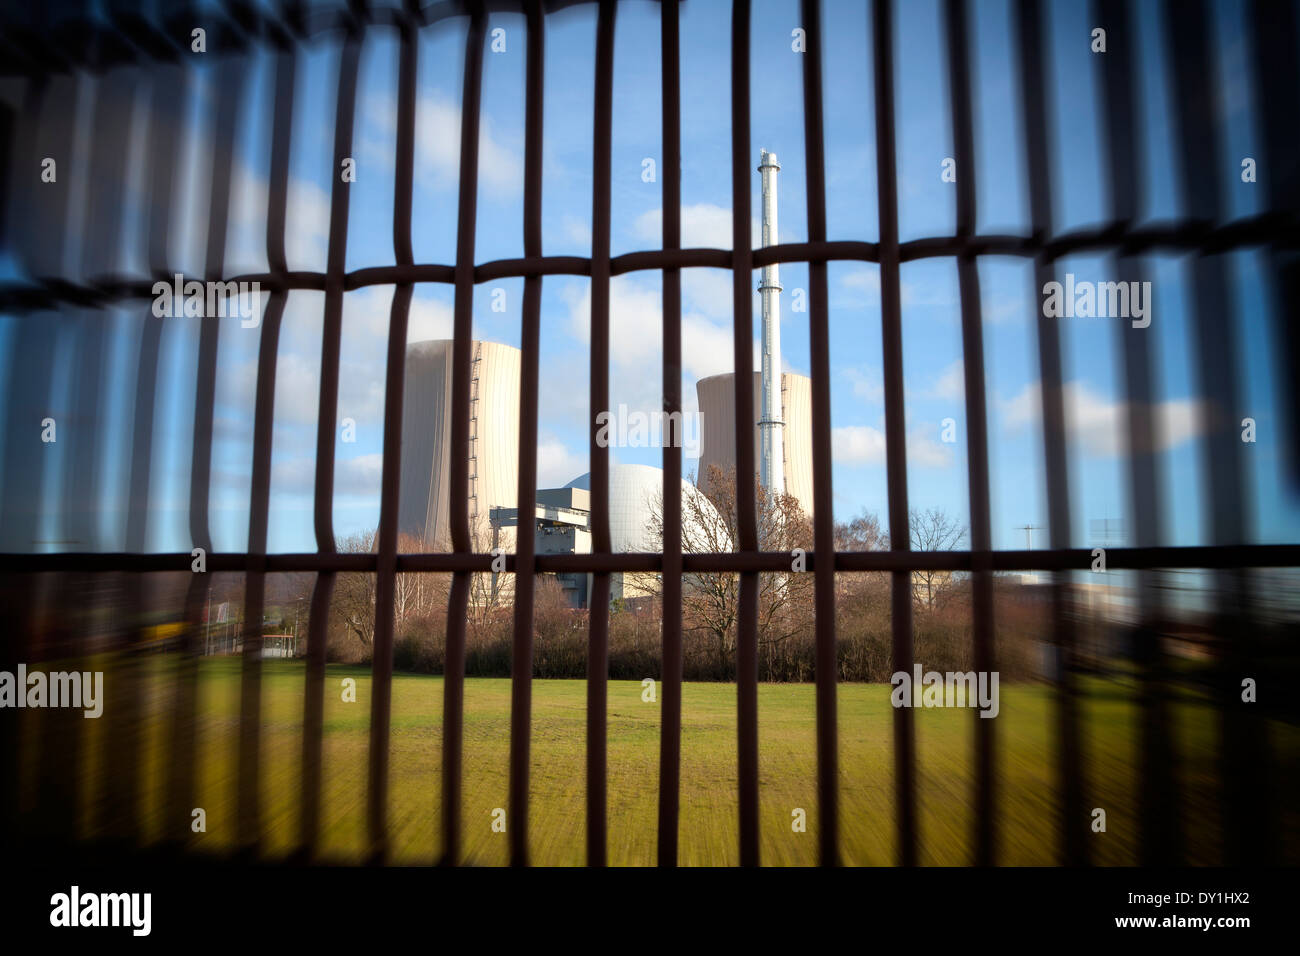 security fence, Grohnde Nuclear Power Plant, Emmerthal, Hameln, Lower Saxony, Germany, Europe - Stock Image